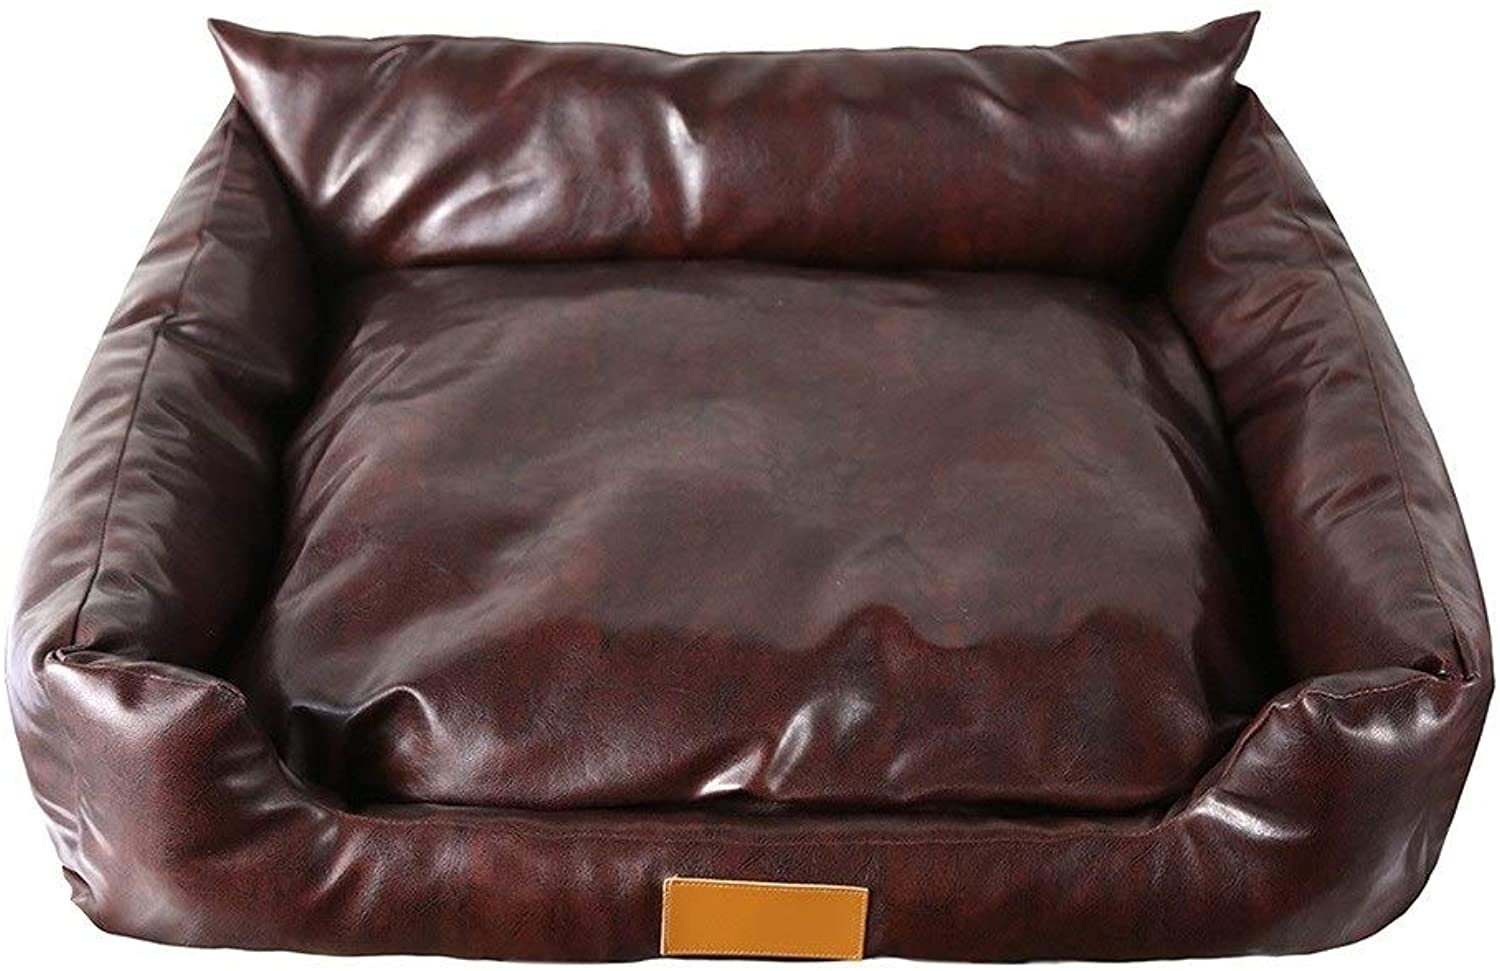 Dog Bed, Rectangular Leather Sofa Cushion Dog Cat Mat with Removeable Cover (Brown color) (Size   60  50  24cm)